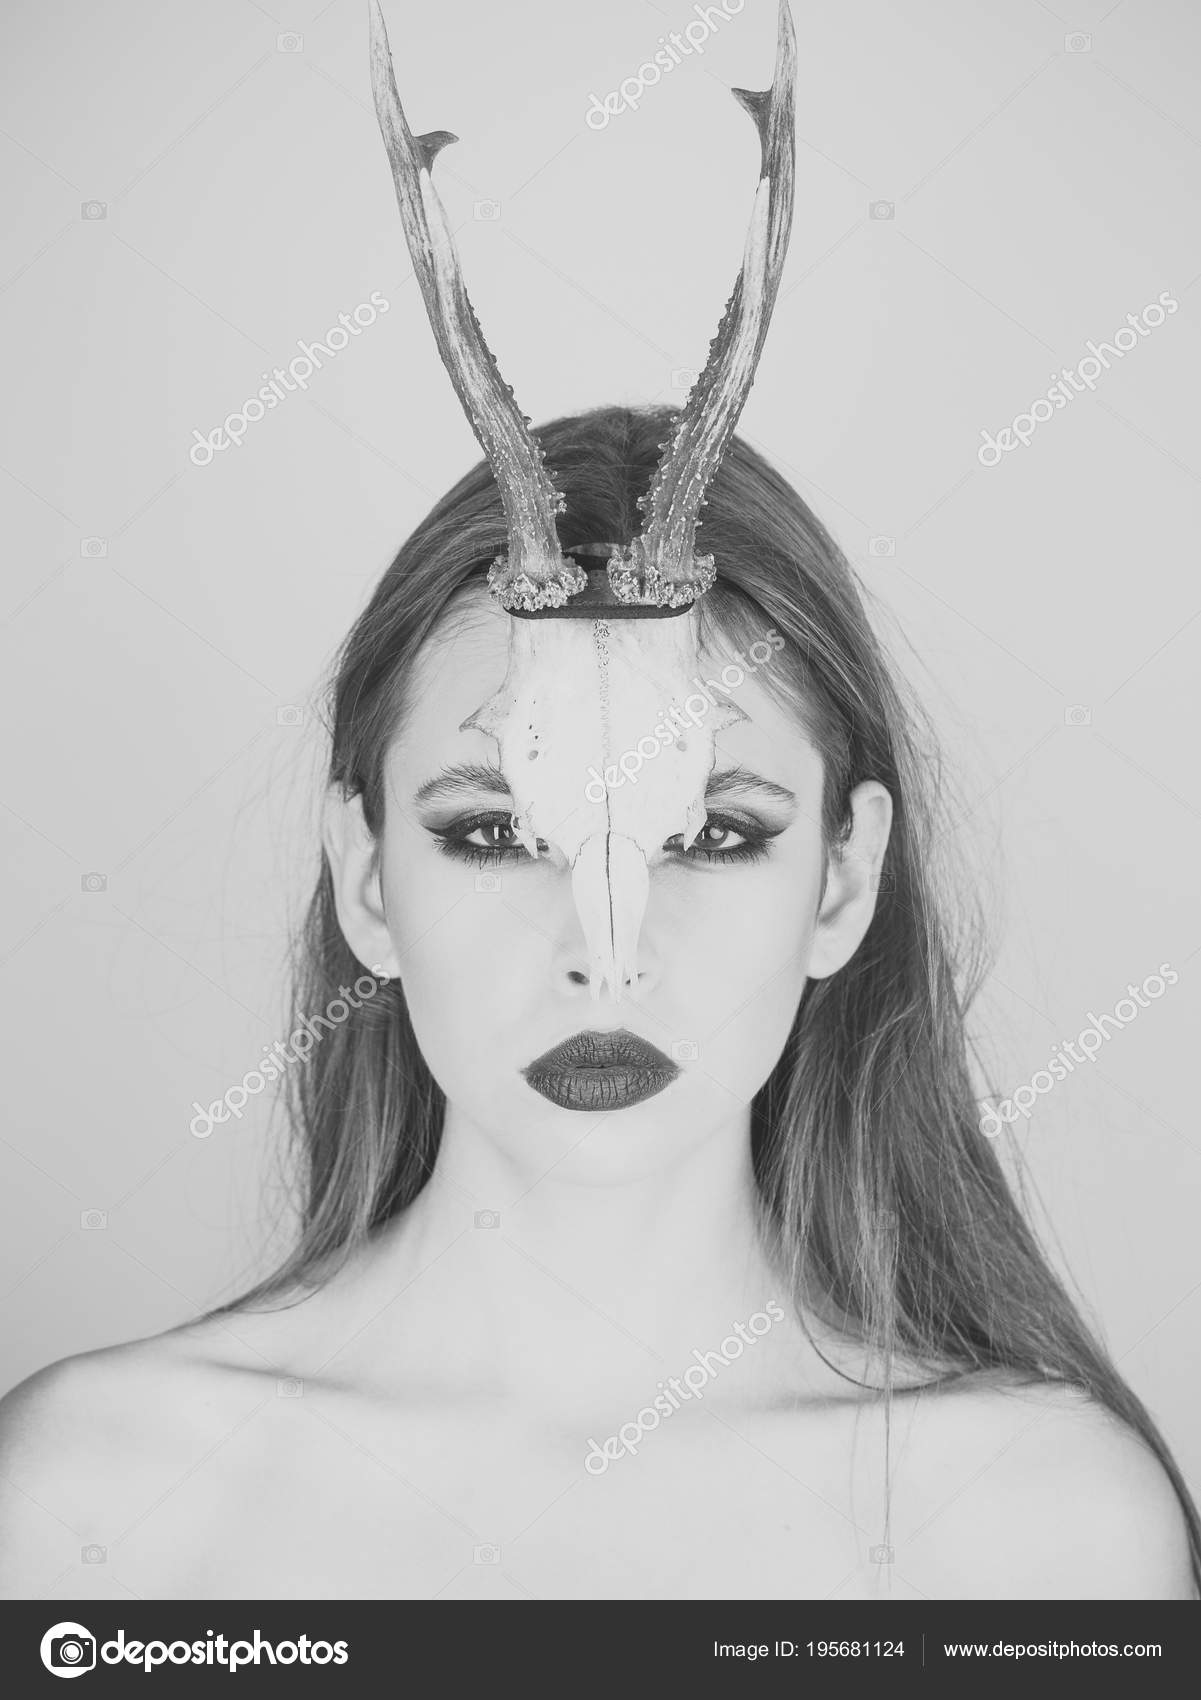 woman with makeup and antlers beauty look and cosmetics for skincare dark fantasy creature elf on halloween in skull chinese horoscope and goat year